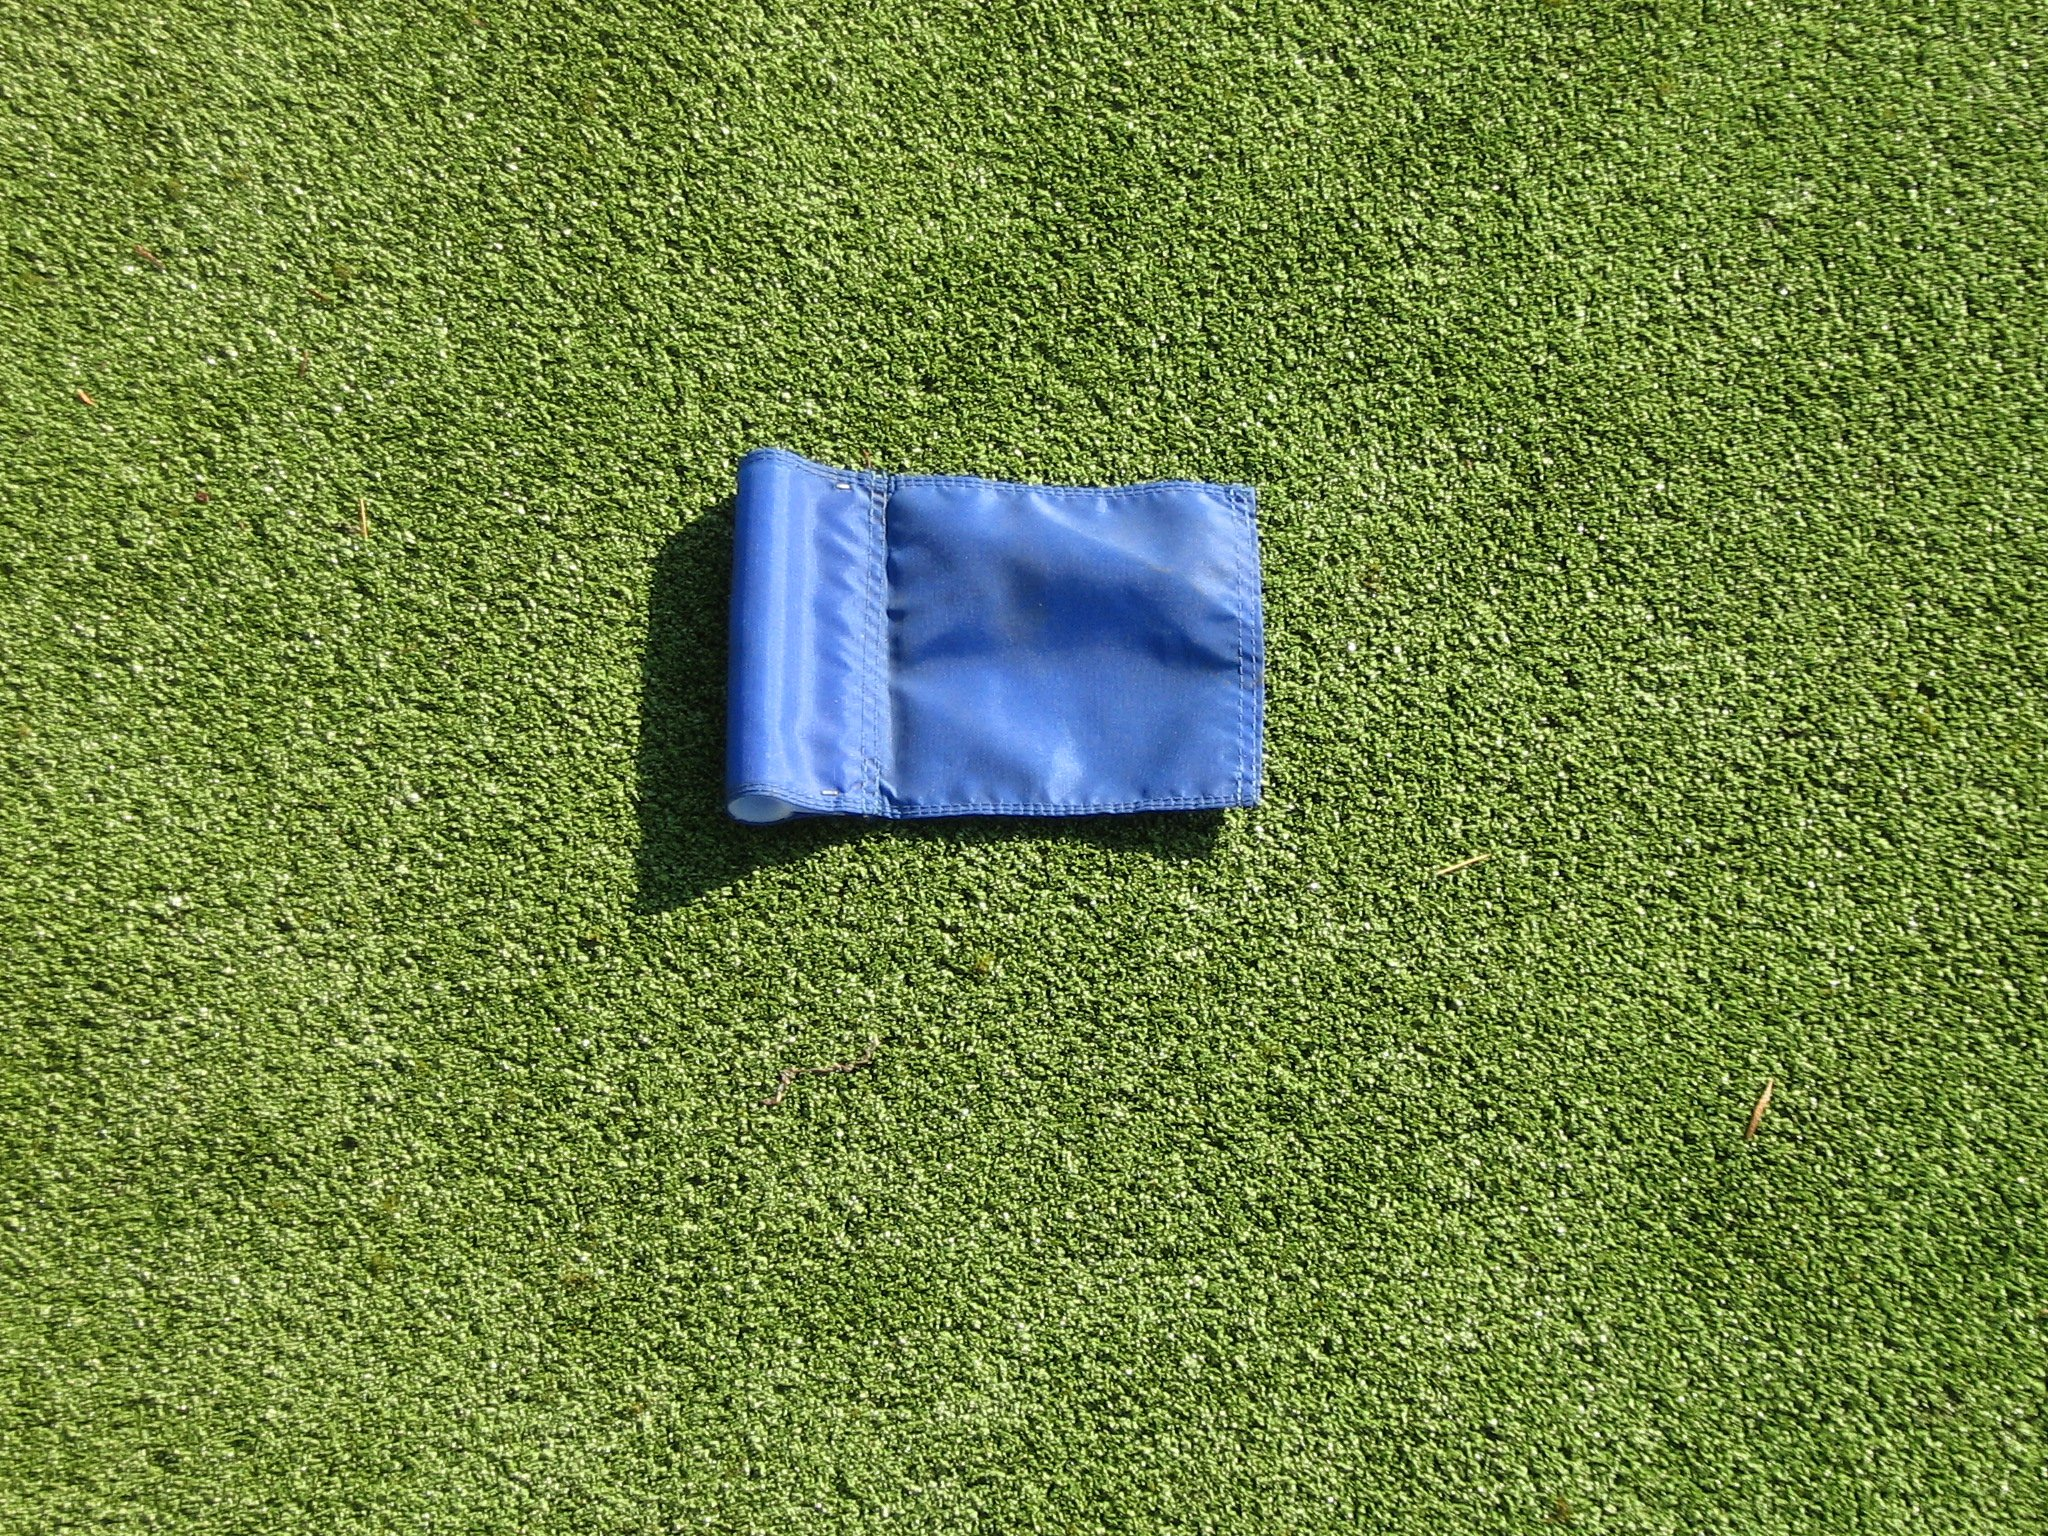 Practice Putting Green - Natural or Synthetic - Accessory Kit - (3) Aluminum 4'' Deep Regulation Cups + (1) Solid Blue Jr. Flag + (1) 30'' Golf Pin Marker w/ Easy Grip Knob & Attached Ball Lifter Disk by ShopTJB (Image #3)